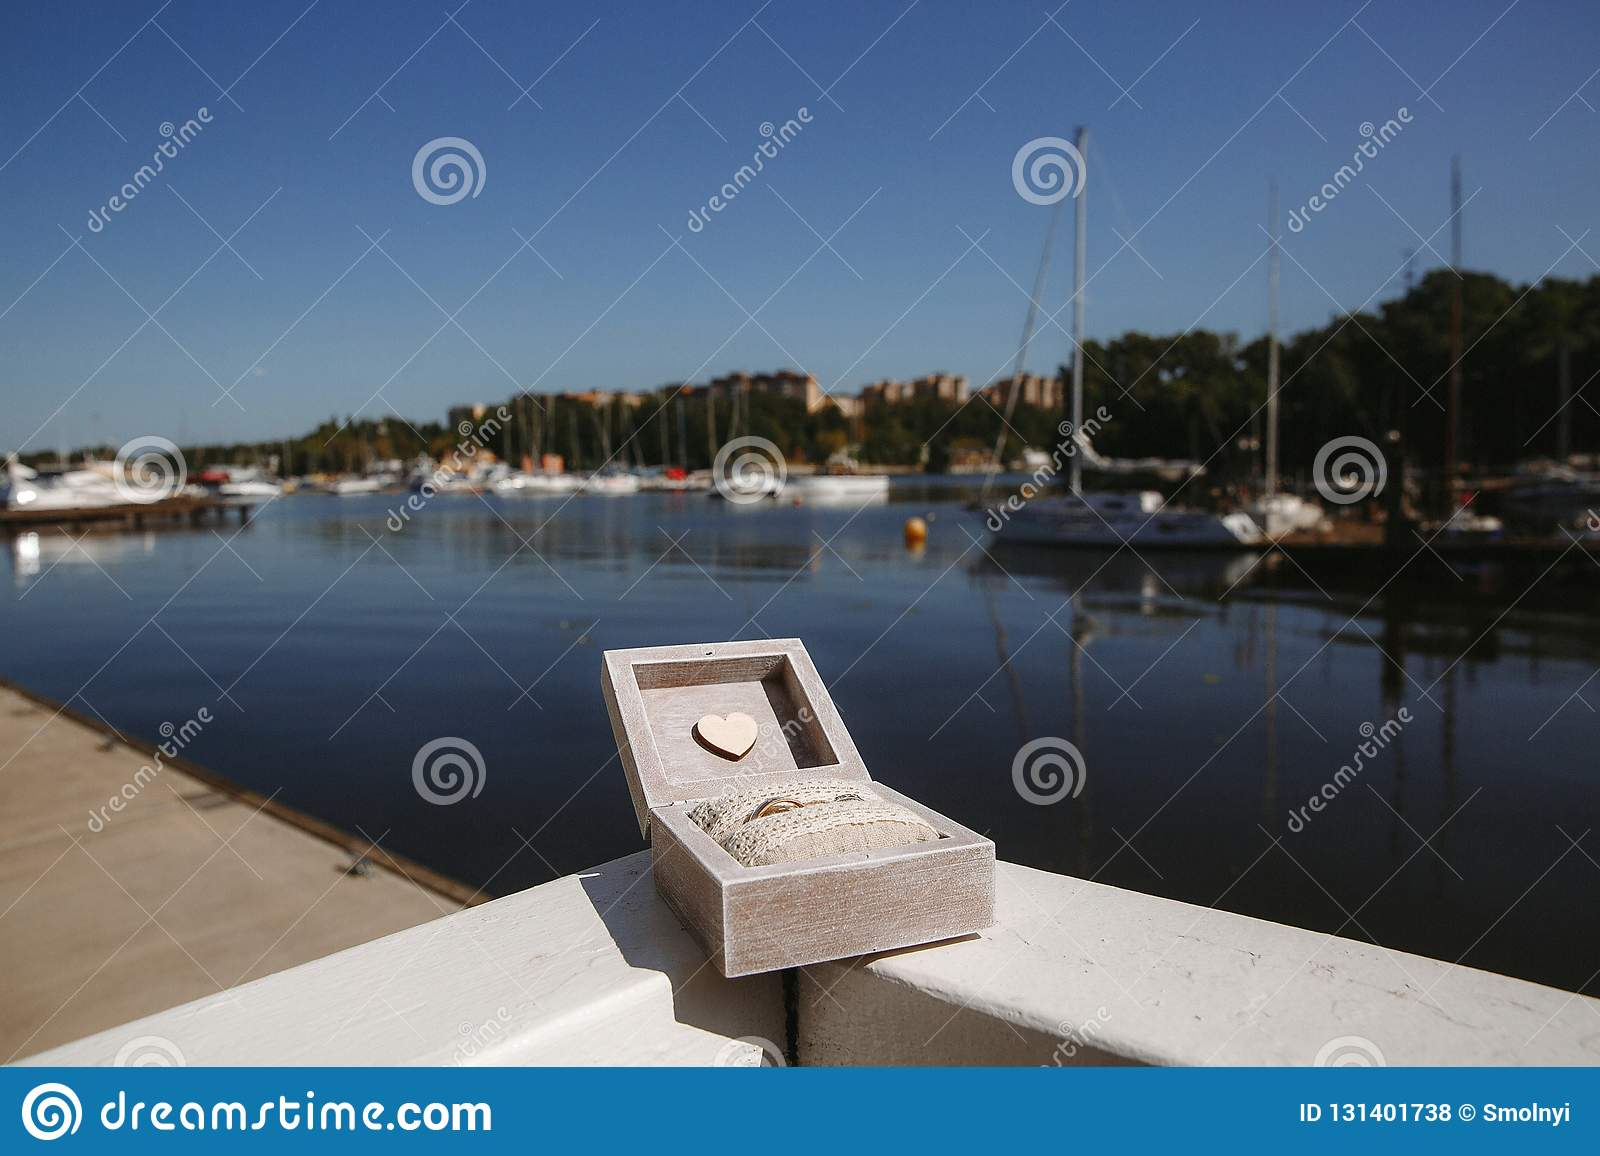 Wedding rings in a wooden box on the background of white yachts in a yacht club